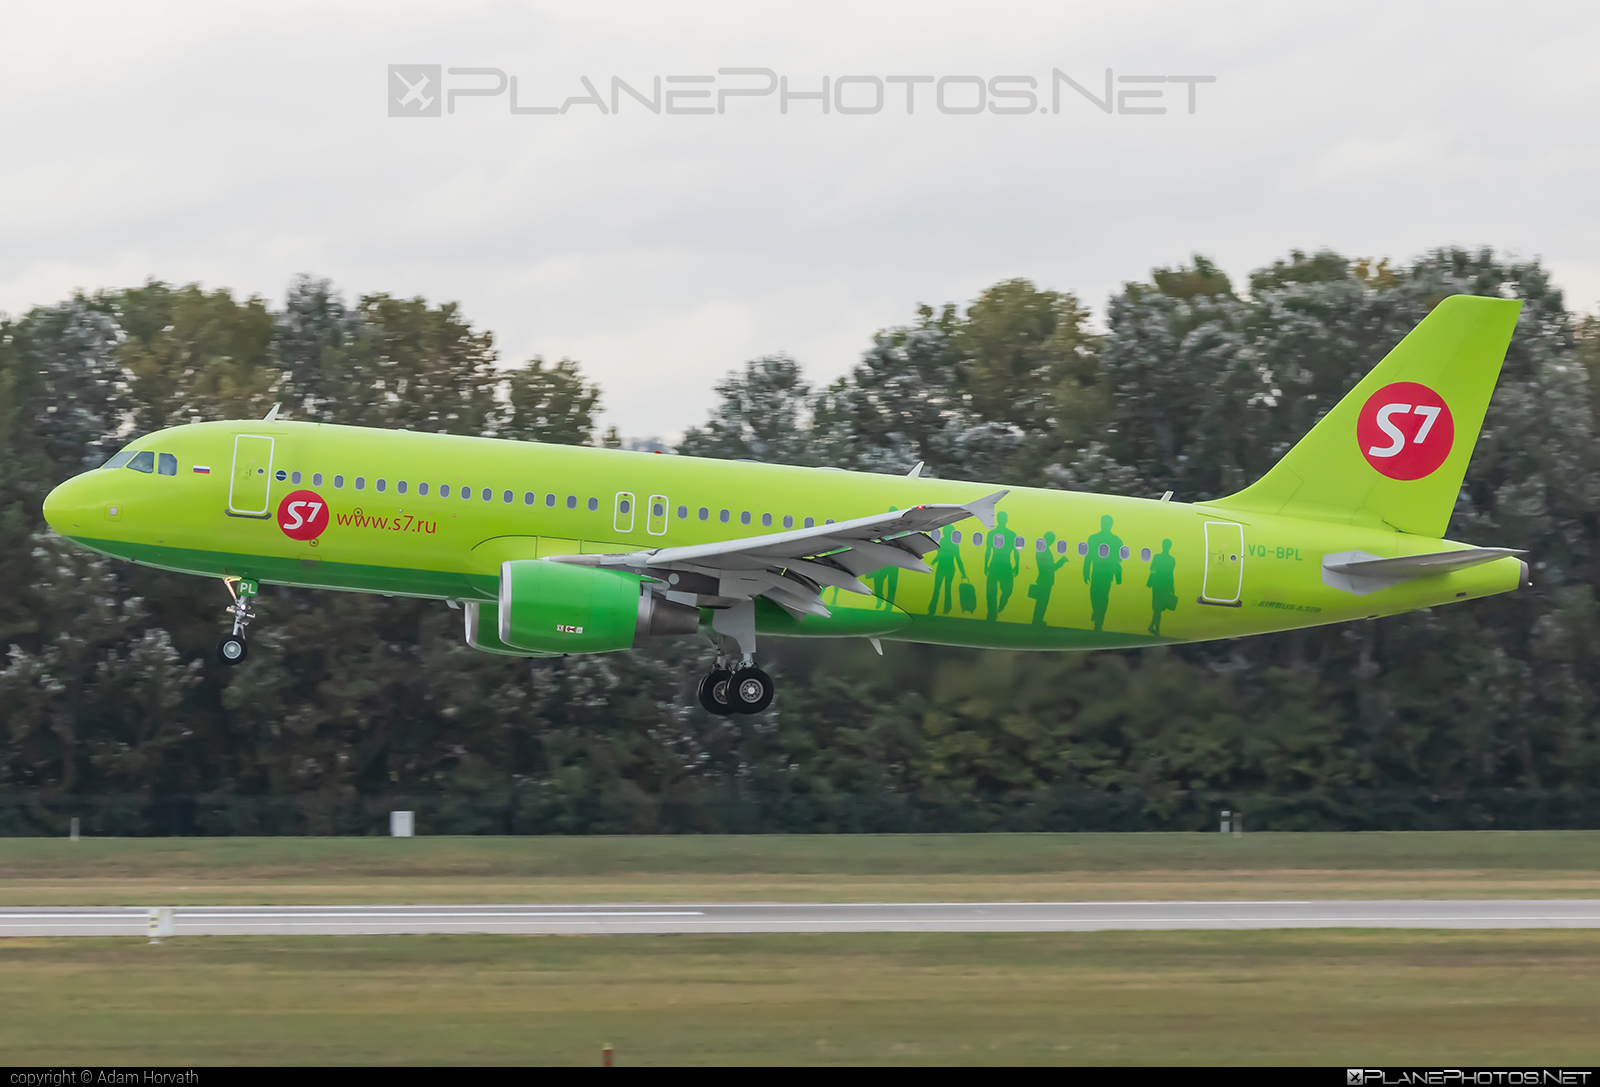 Airbus A320-214 - VQ-BPL operated by S7 Airlines #a320 #a320family #airbus #airbus320